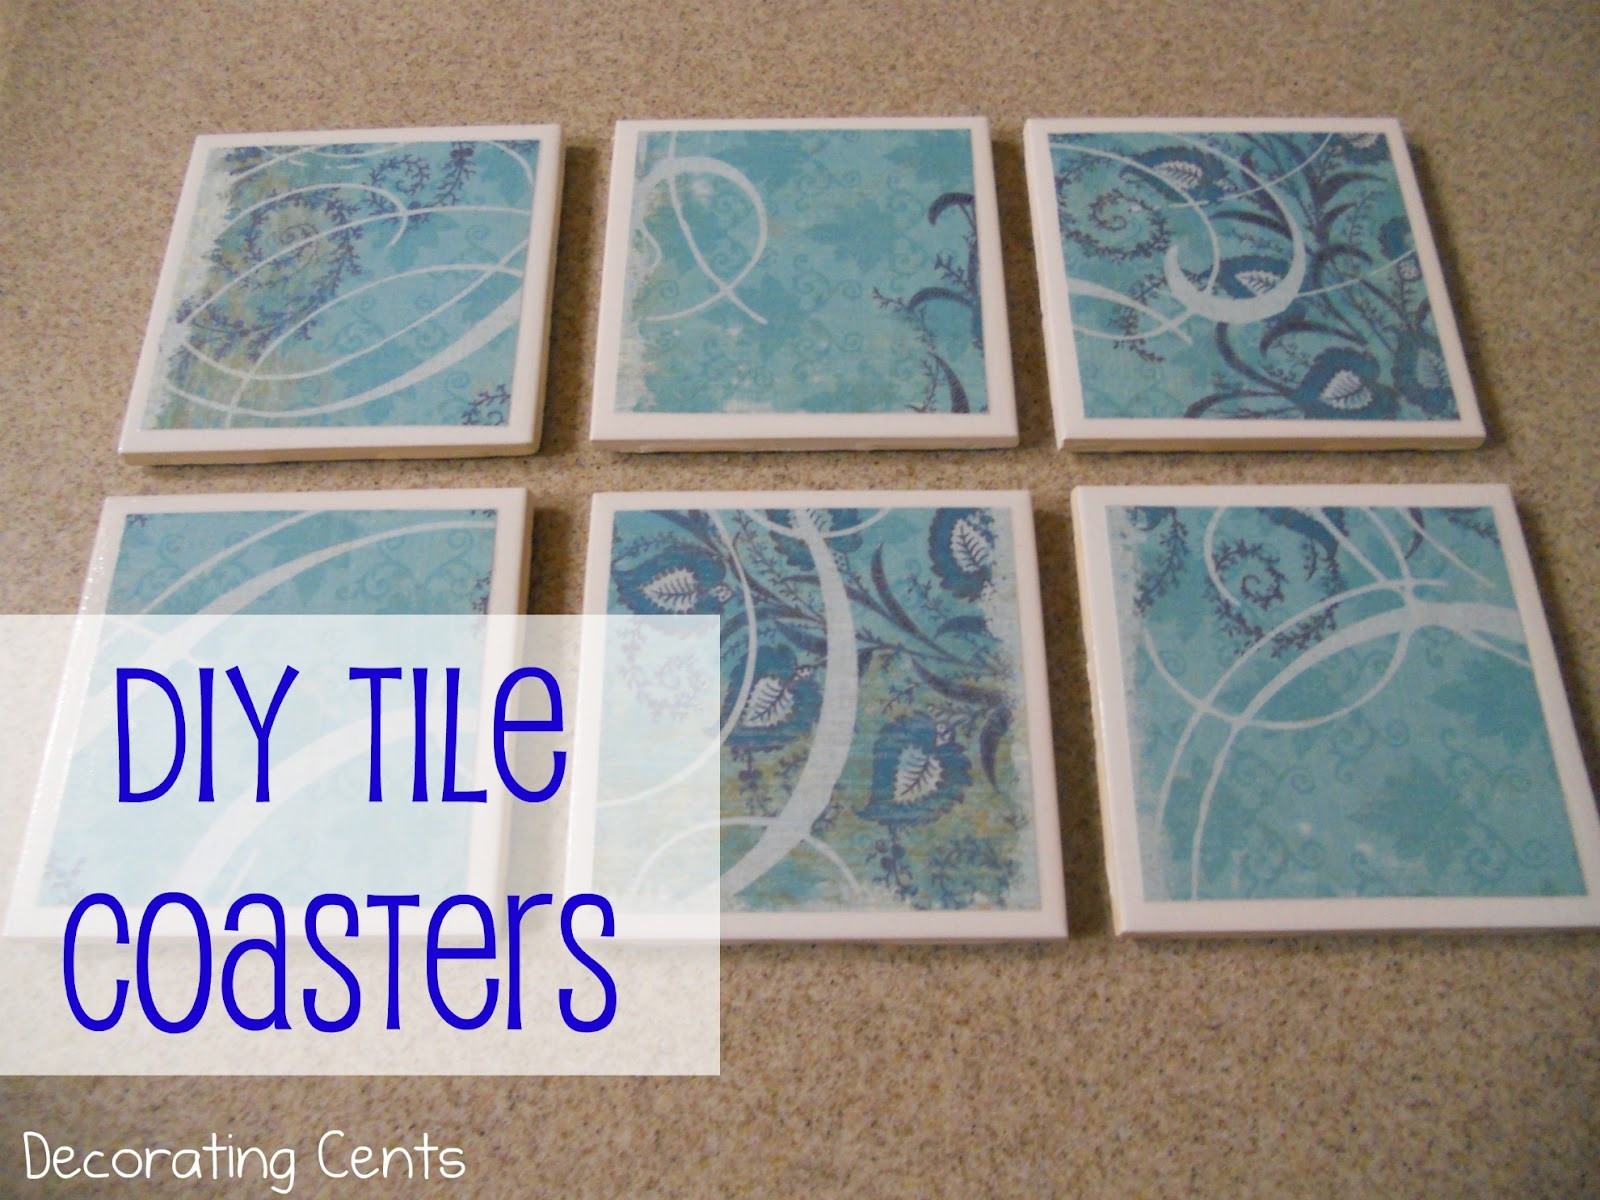 Best ideas about DIY Coaster Tiles . Save or Pin DIY Tile Coasters Now.